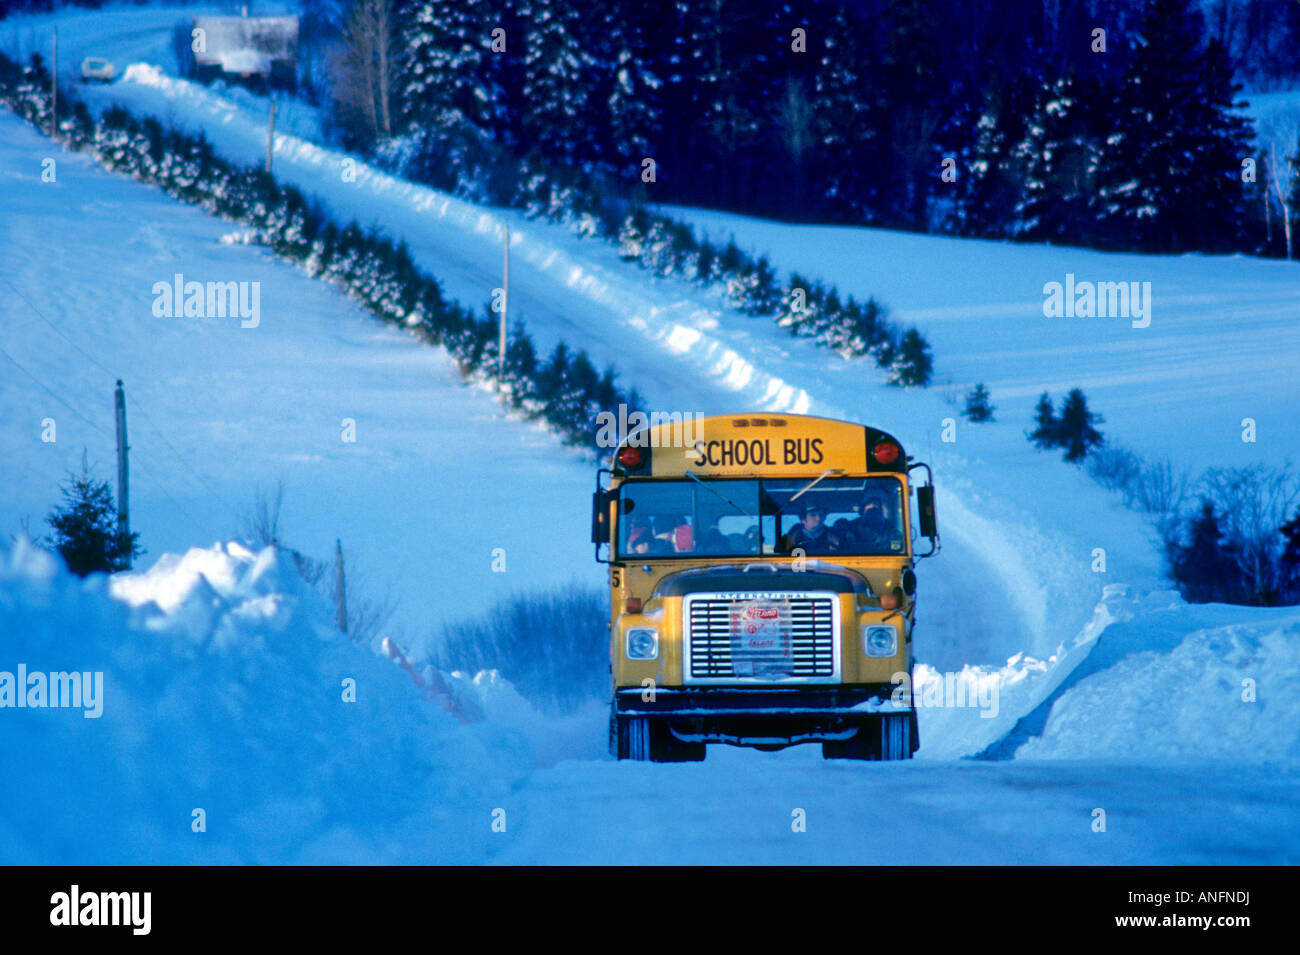 School Bus in Riverdale, Prince Edward Island, Canada. - Stock Image